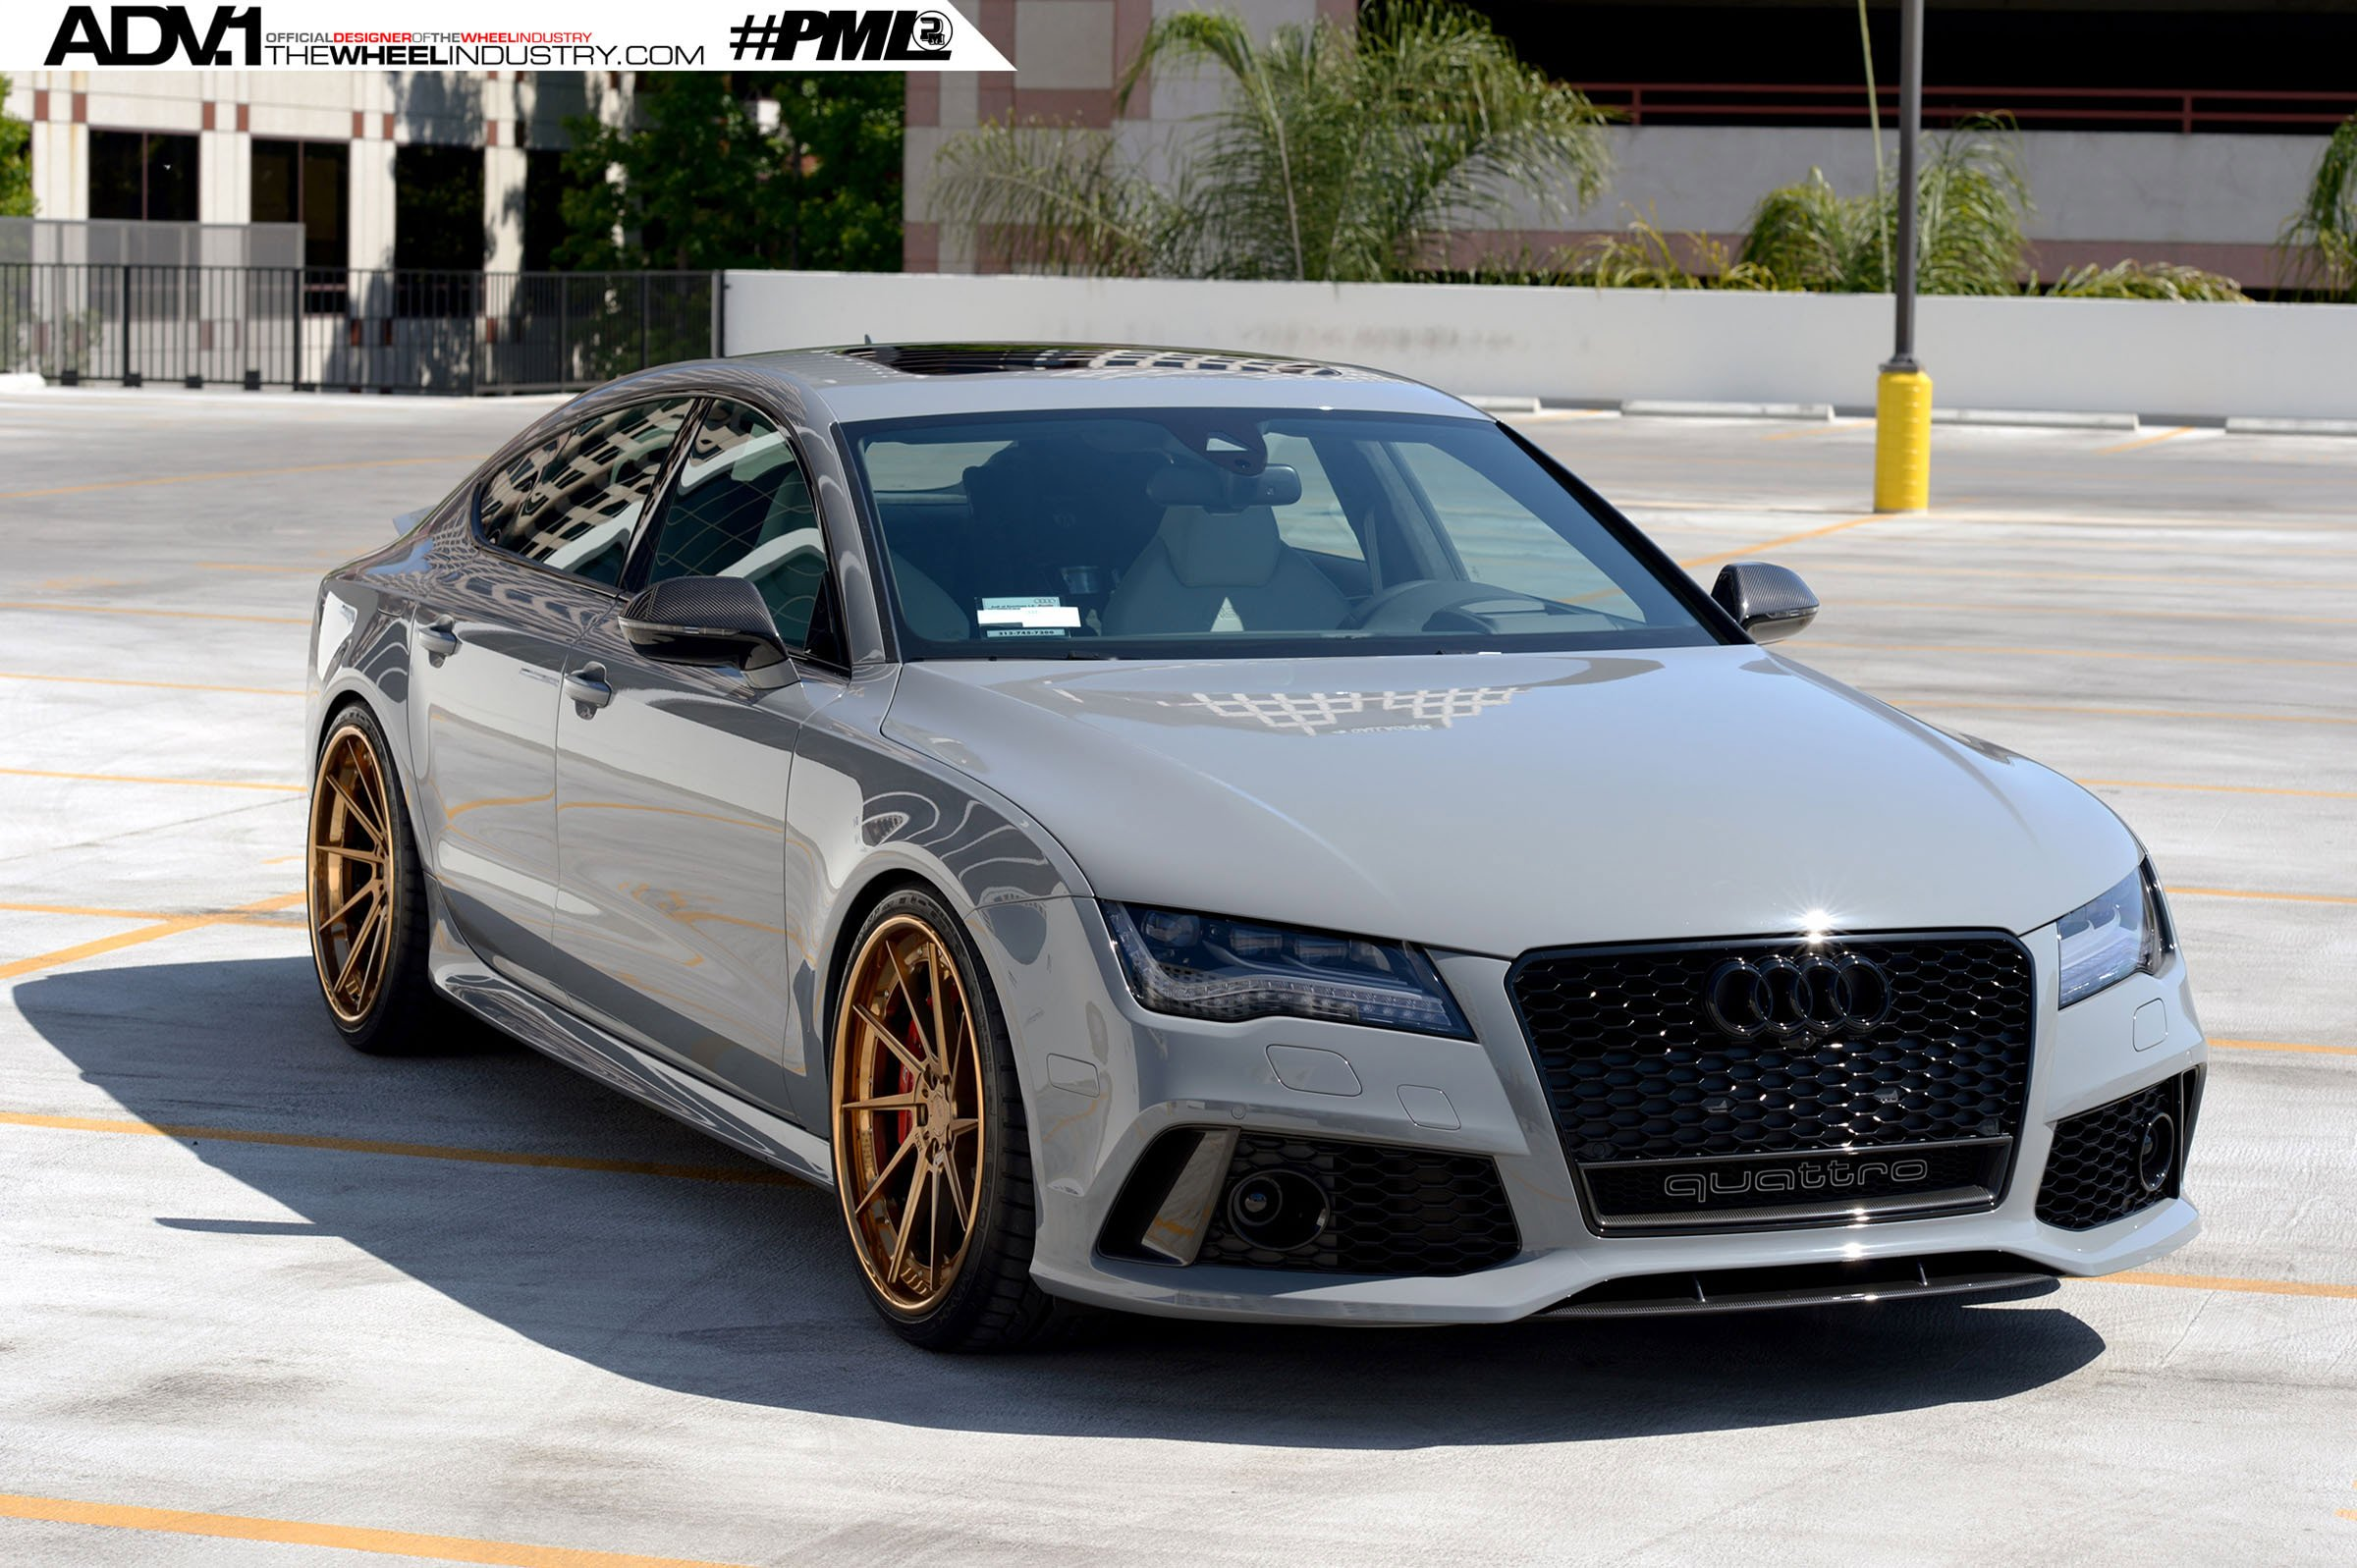 Adv 1 Wheels Gallery Audi Rs7 Cars Tuning Wallpaper 2400x1597 2000 Chevy Malibu Fuse Box Fan 693790 Wallpaperup